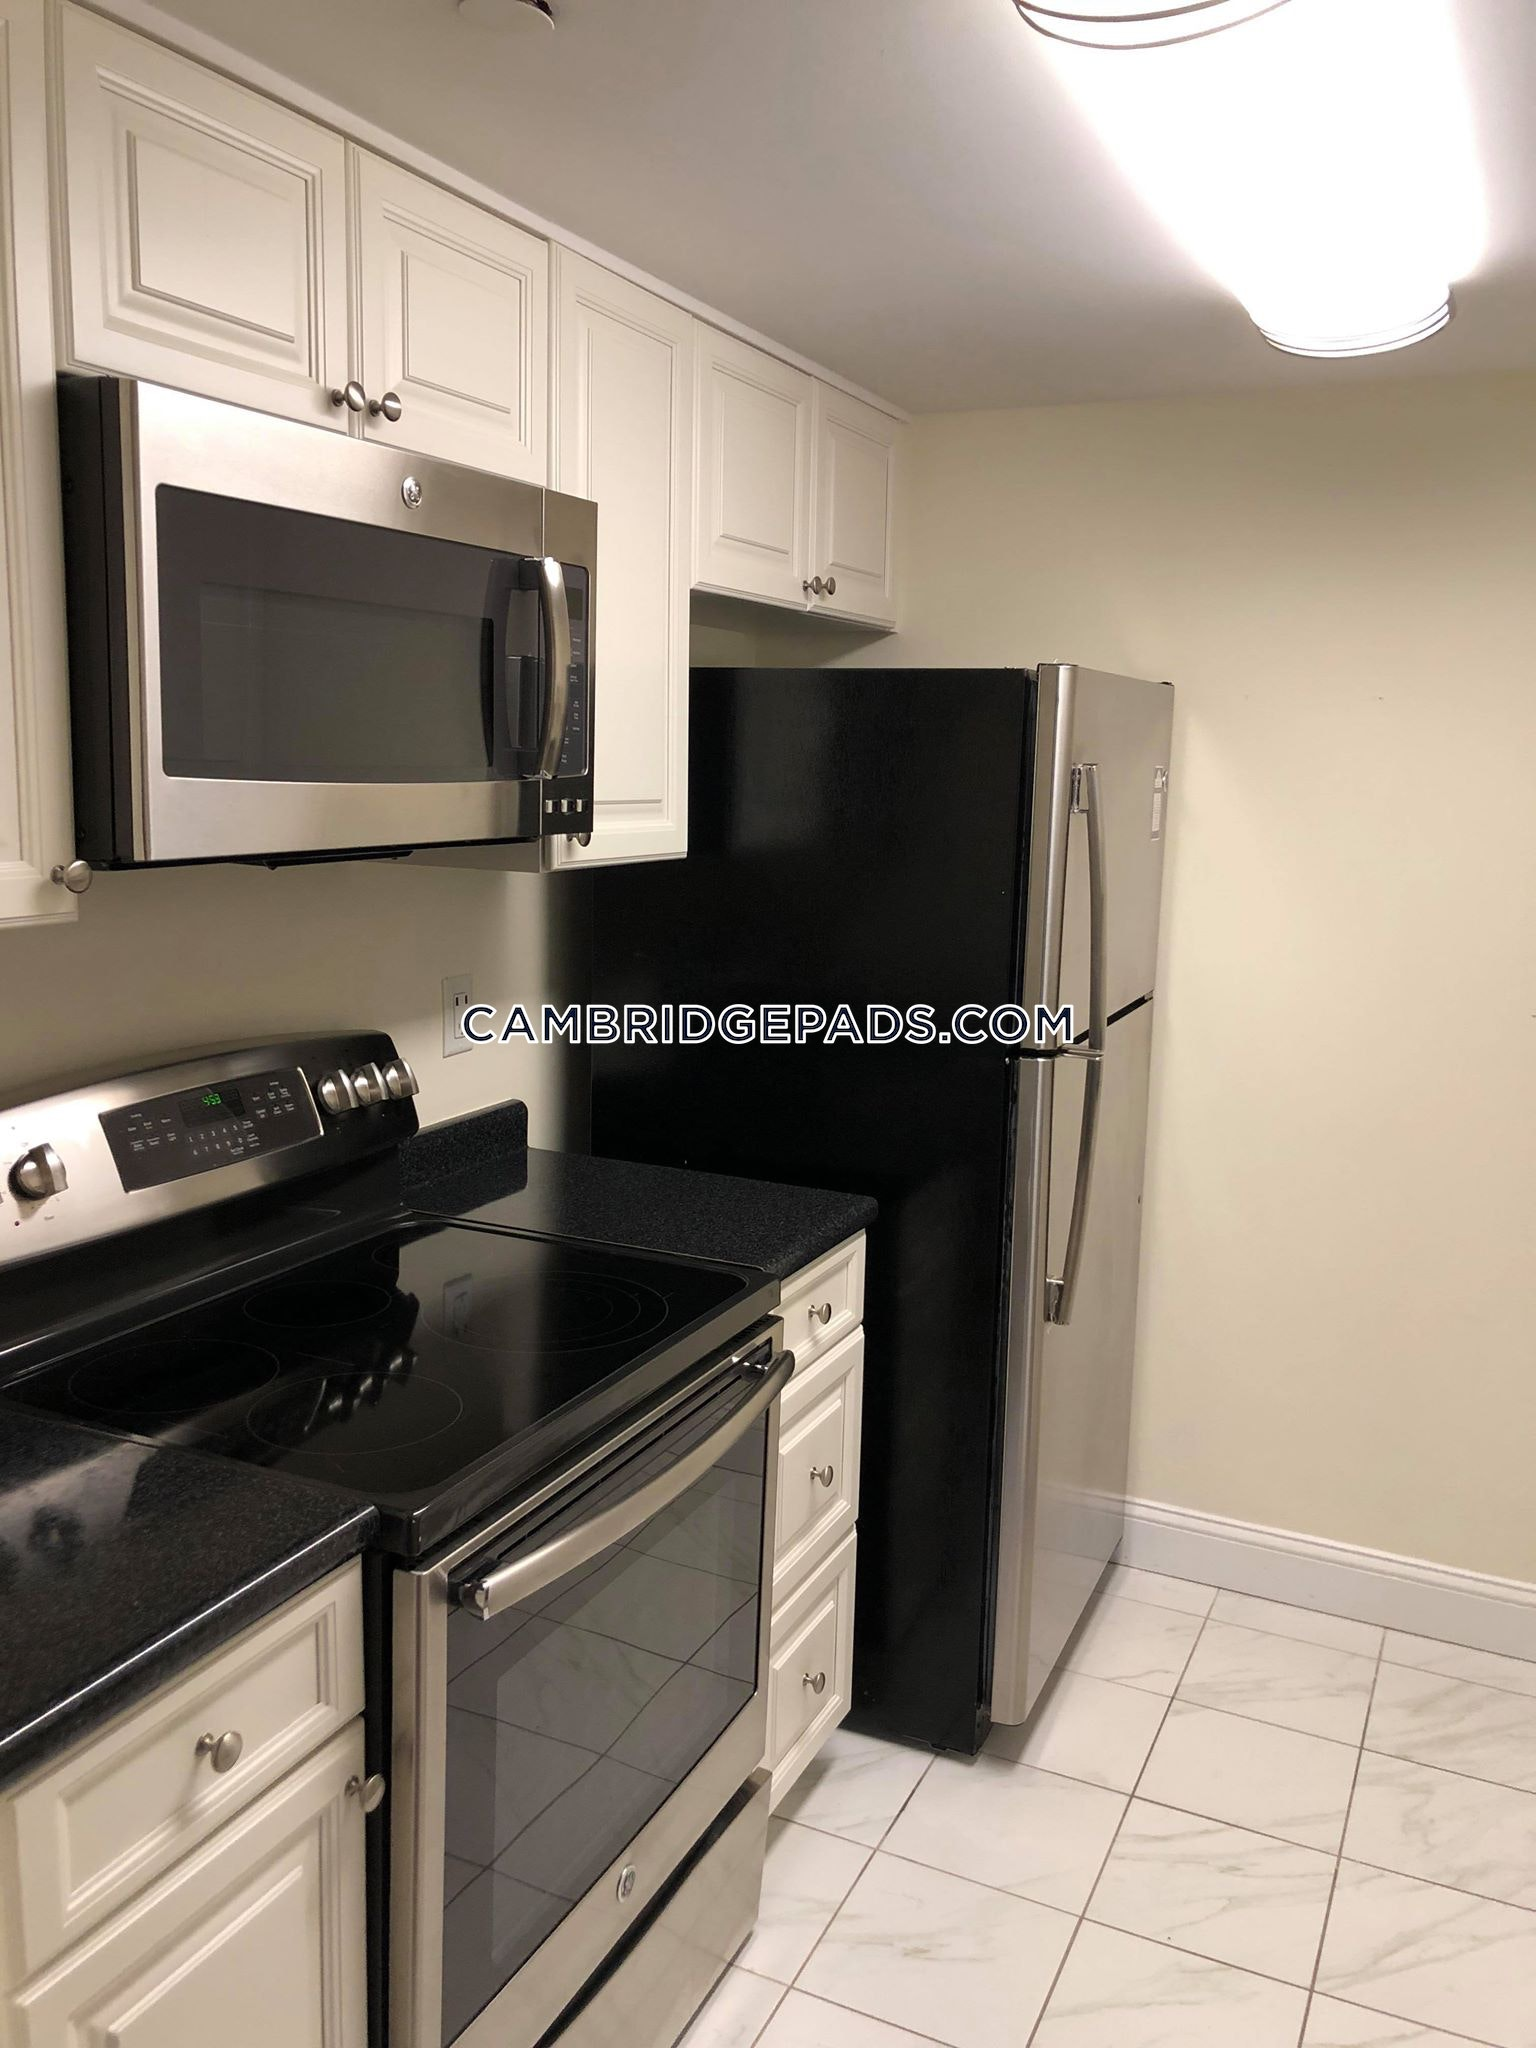 CAMBRIDGE - HARVARD SQUARE - $3,665